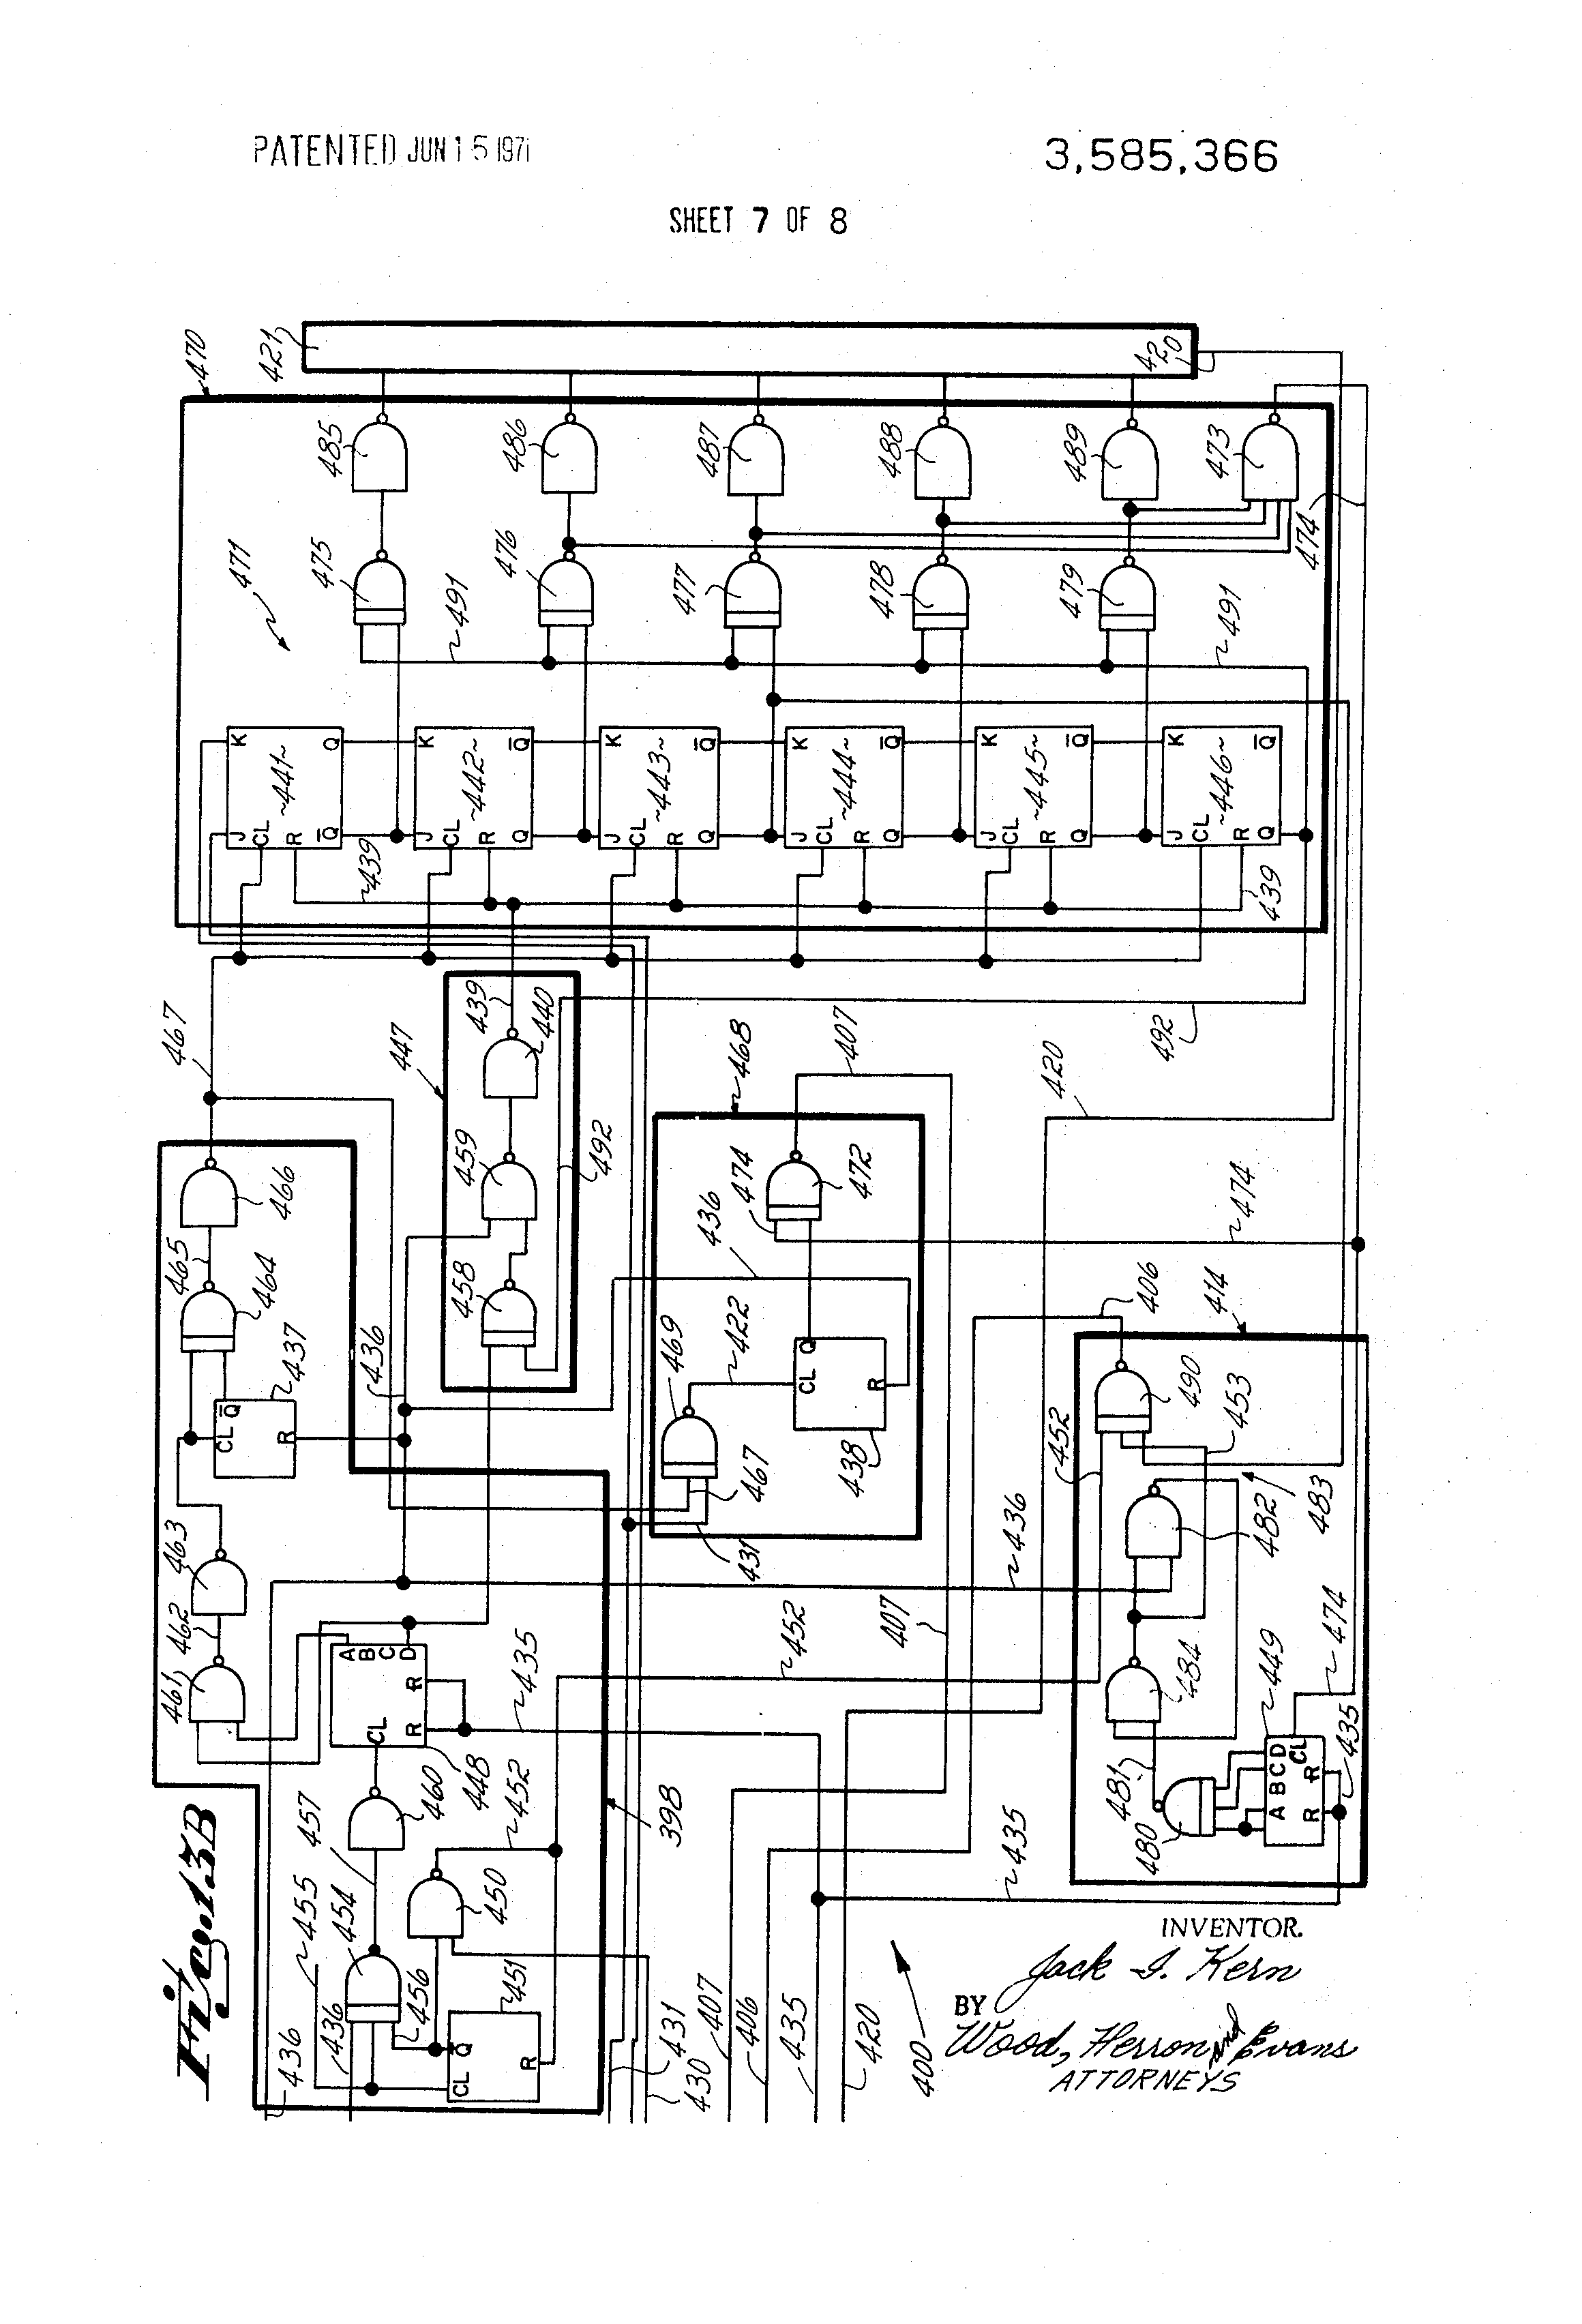 Us3585366 Self Timing Encoded Tag Reader Inverter Schematic Diagram Group Picture Image By Patent Drawing